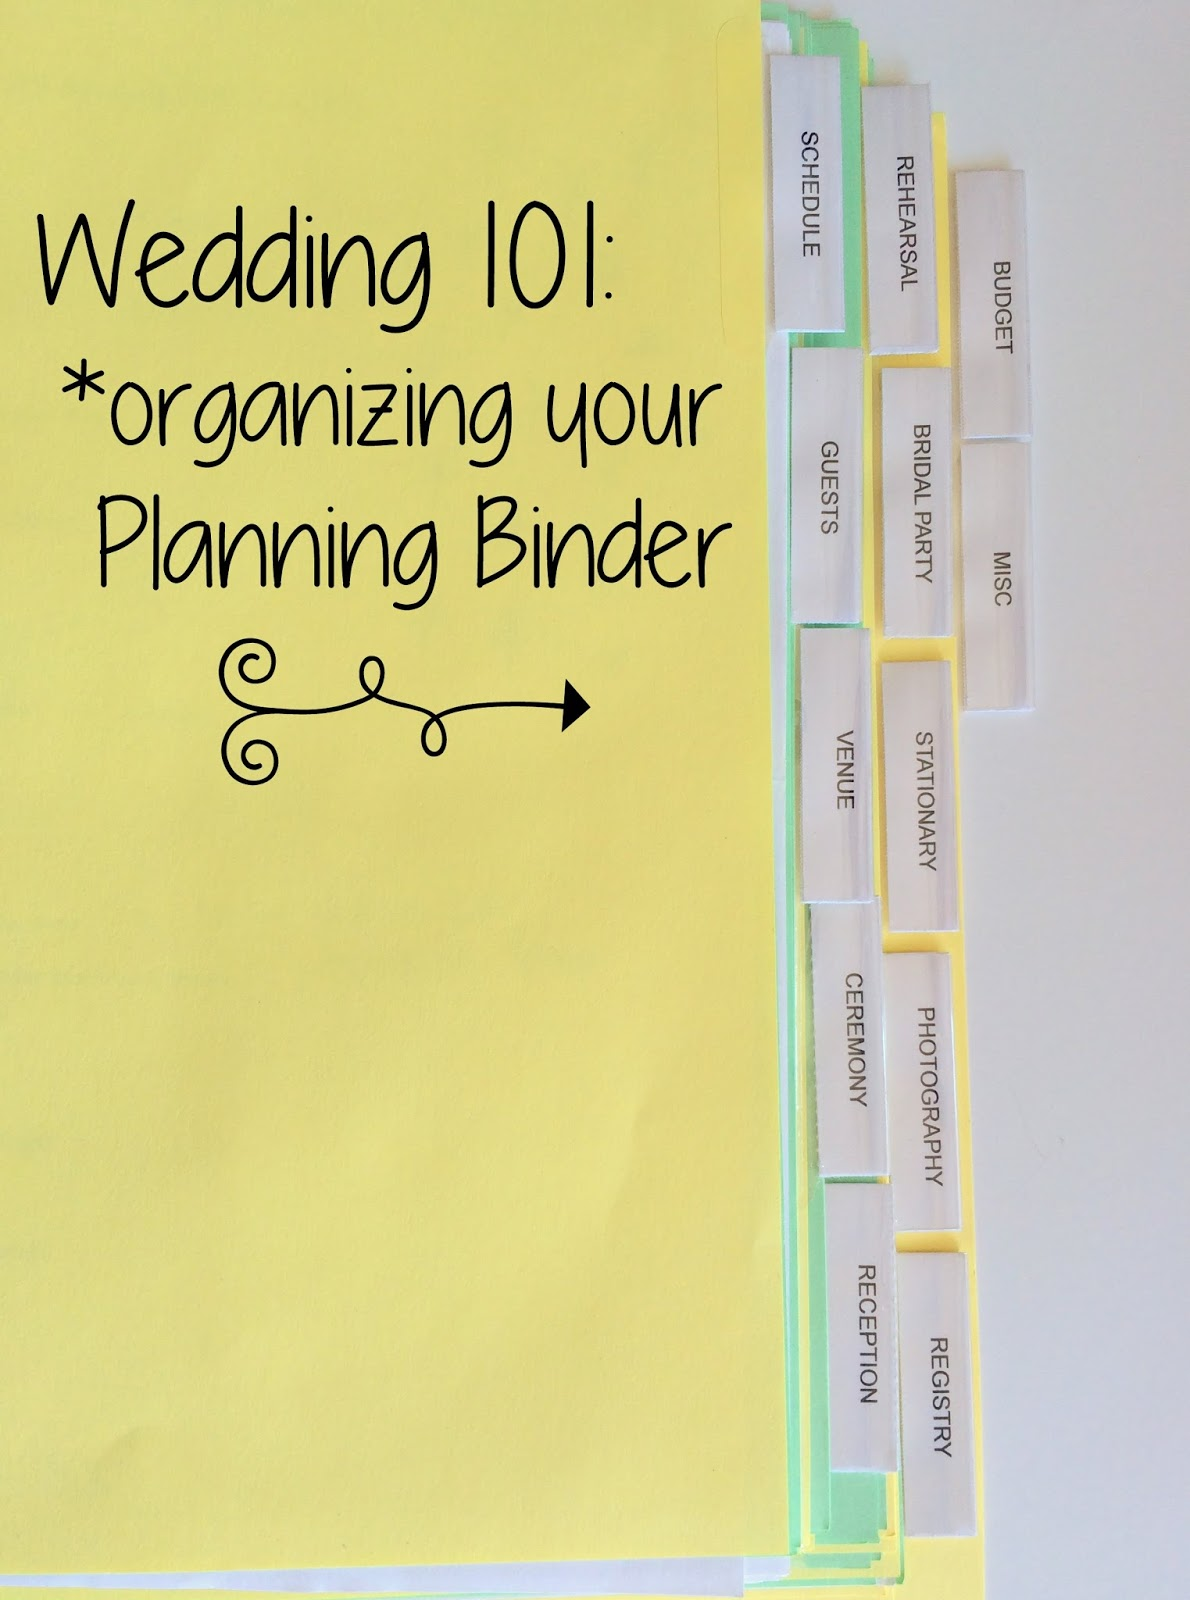 Pies Etc Wedding 101 The Planning Binder